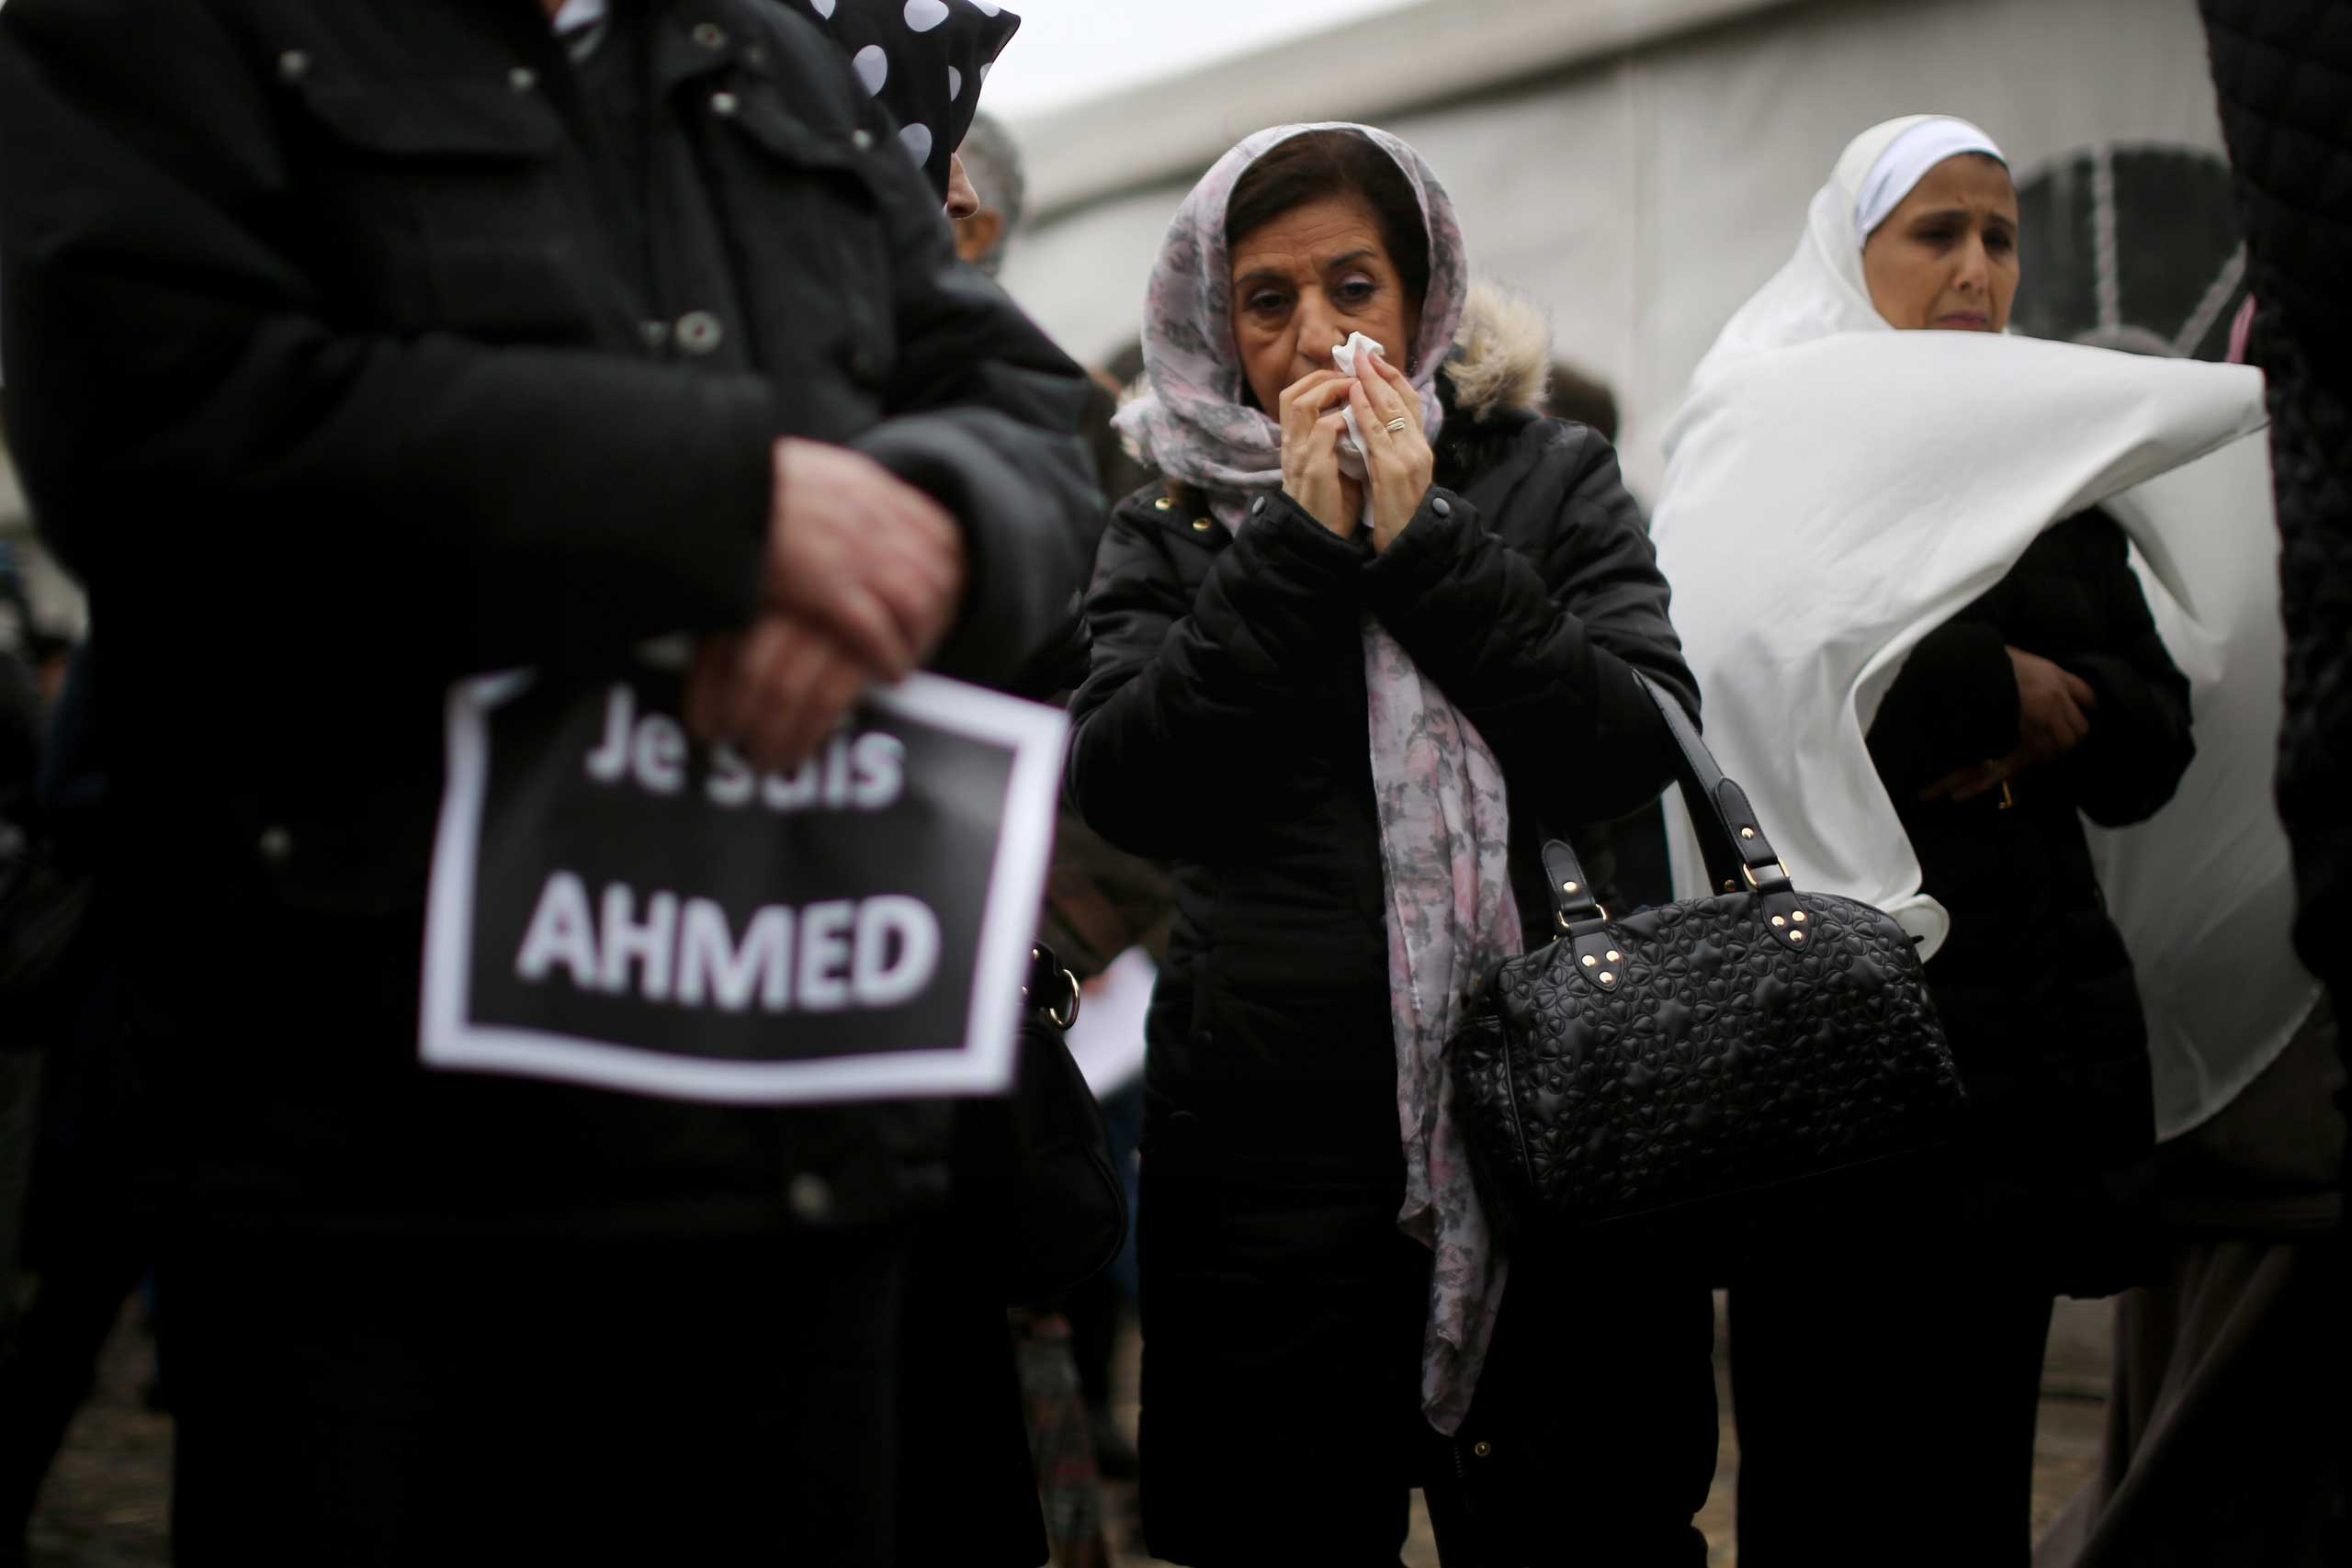 A female mourner reacts during the funeral of murdered police officer Ahmed Merabet at a Muslim cemetery in Bobigny, France, on Jan. 13, 2015.